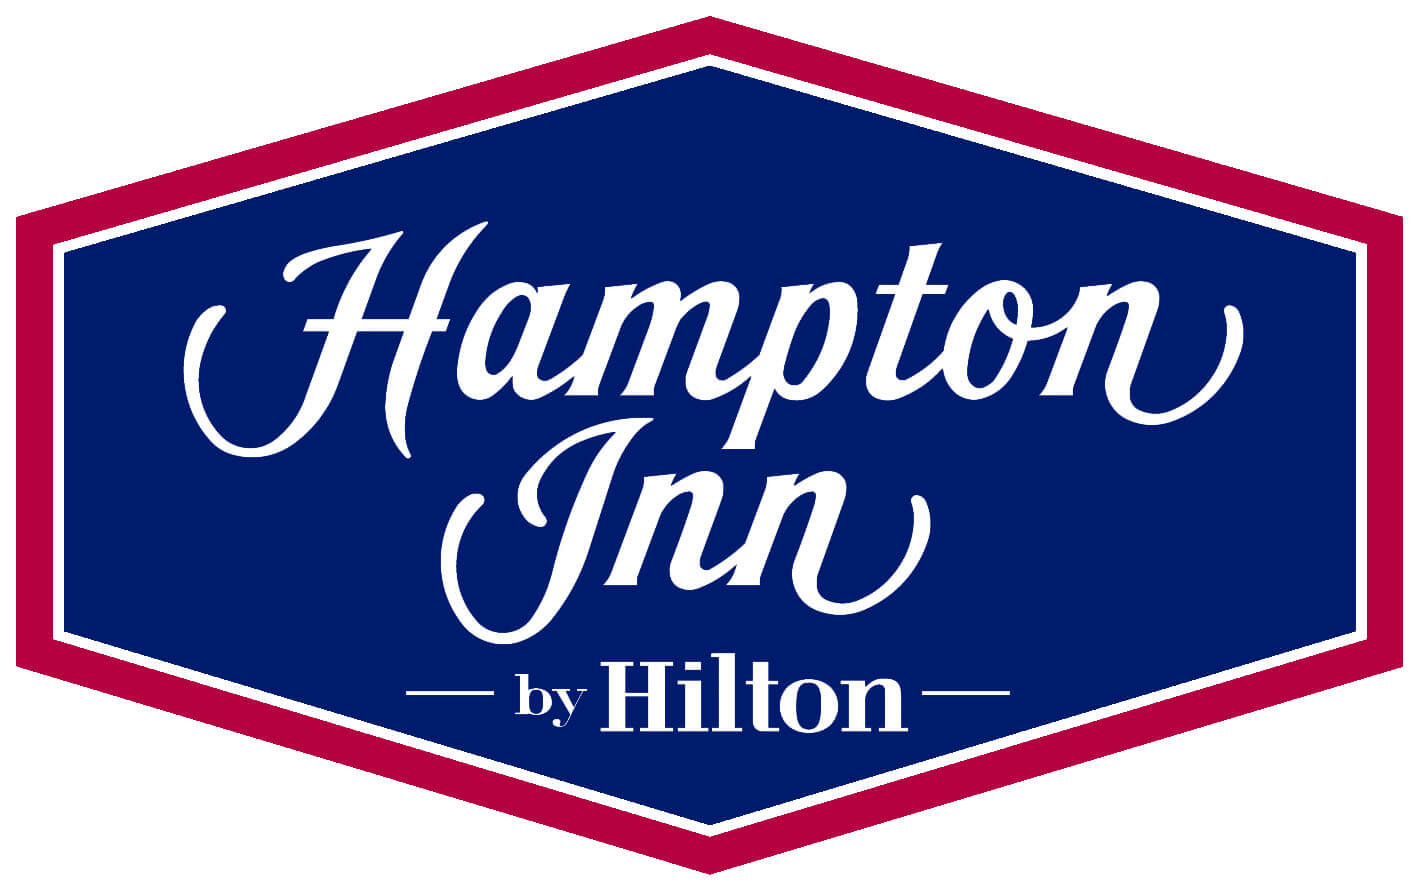 Hampton Inn & Suites Fort Mill Jobs, Apply to a Job Near You.